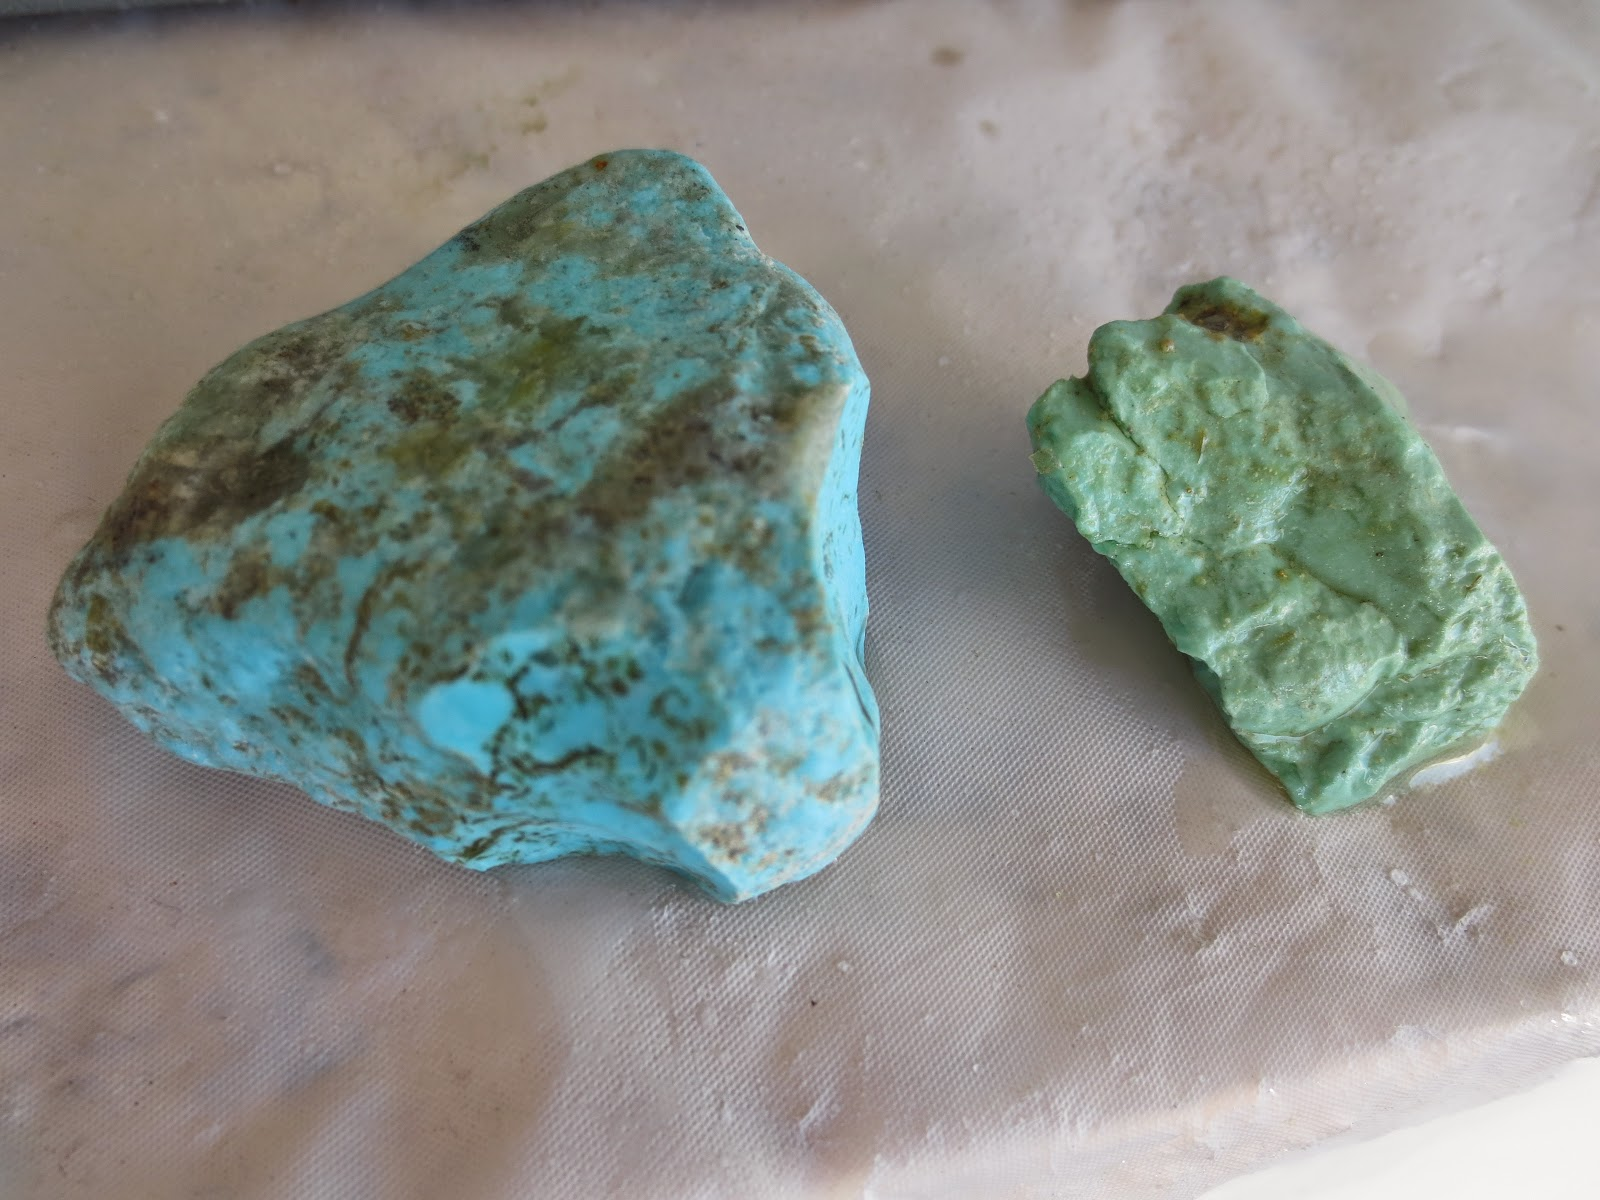 High quality vs. low quality turquoise